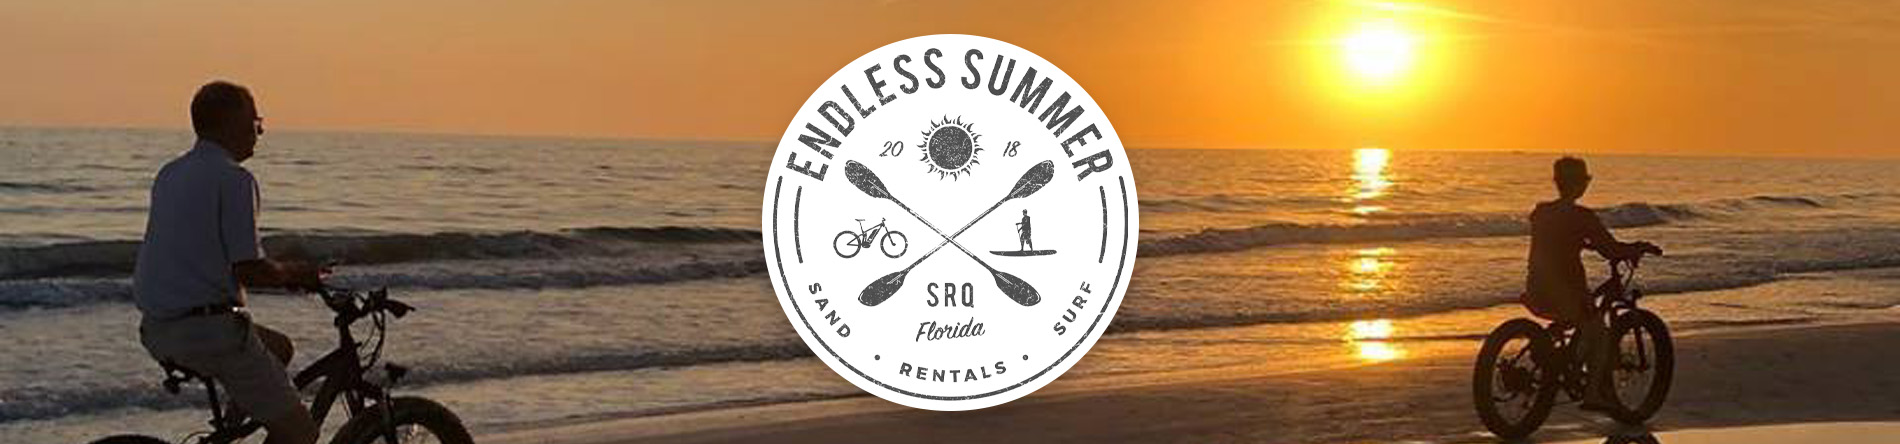 Endless Summer Eco Tours and Rentals is a Bike Rental Company in Sarasota, FL